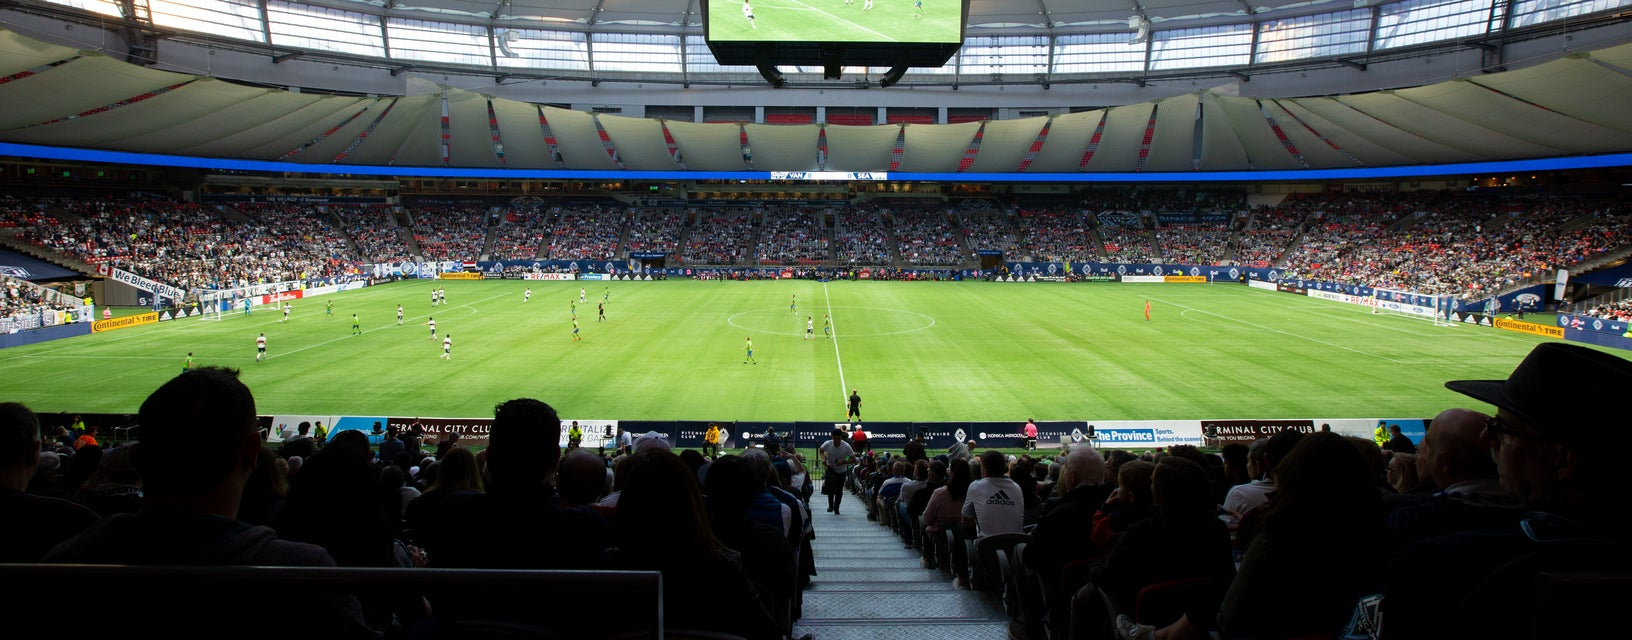 Seat view from South Prime